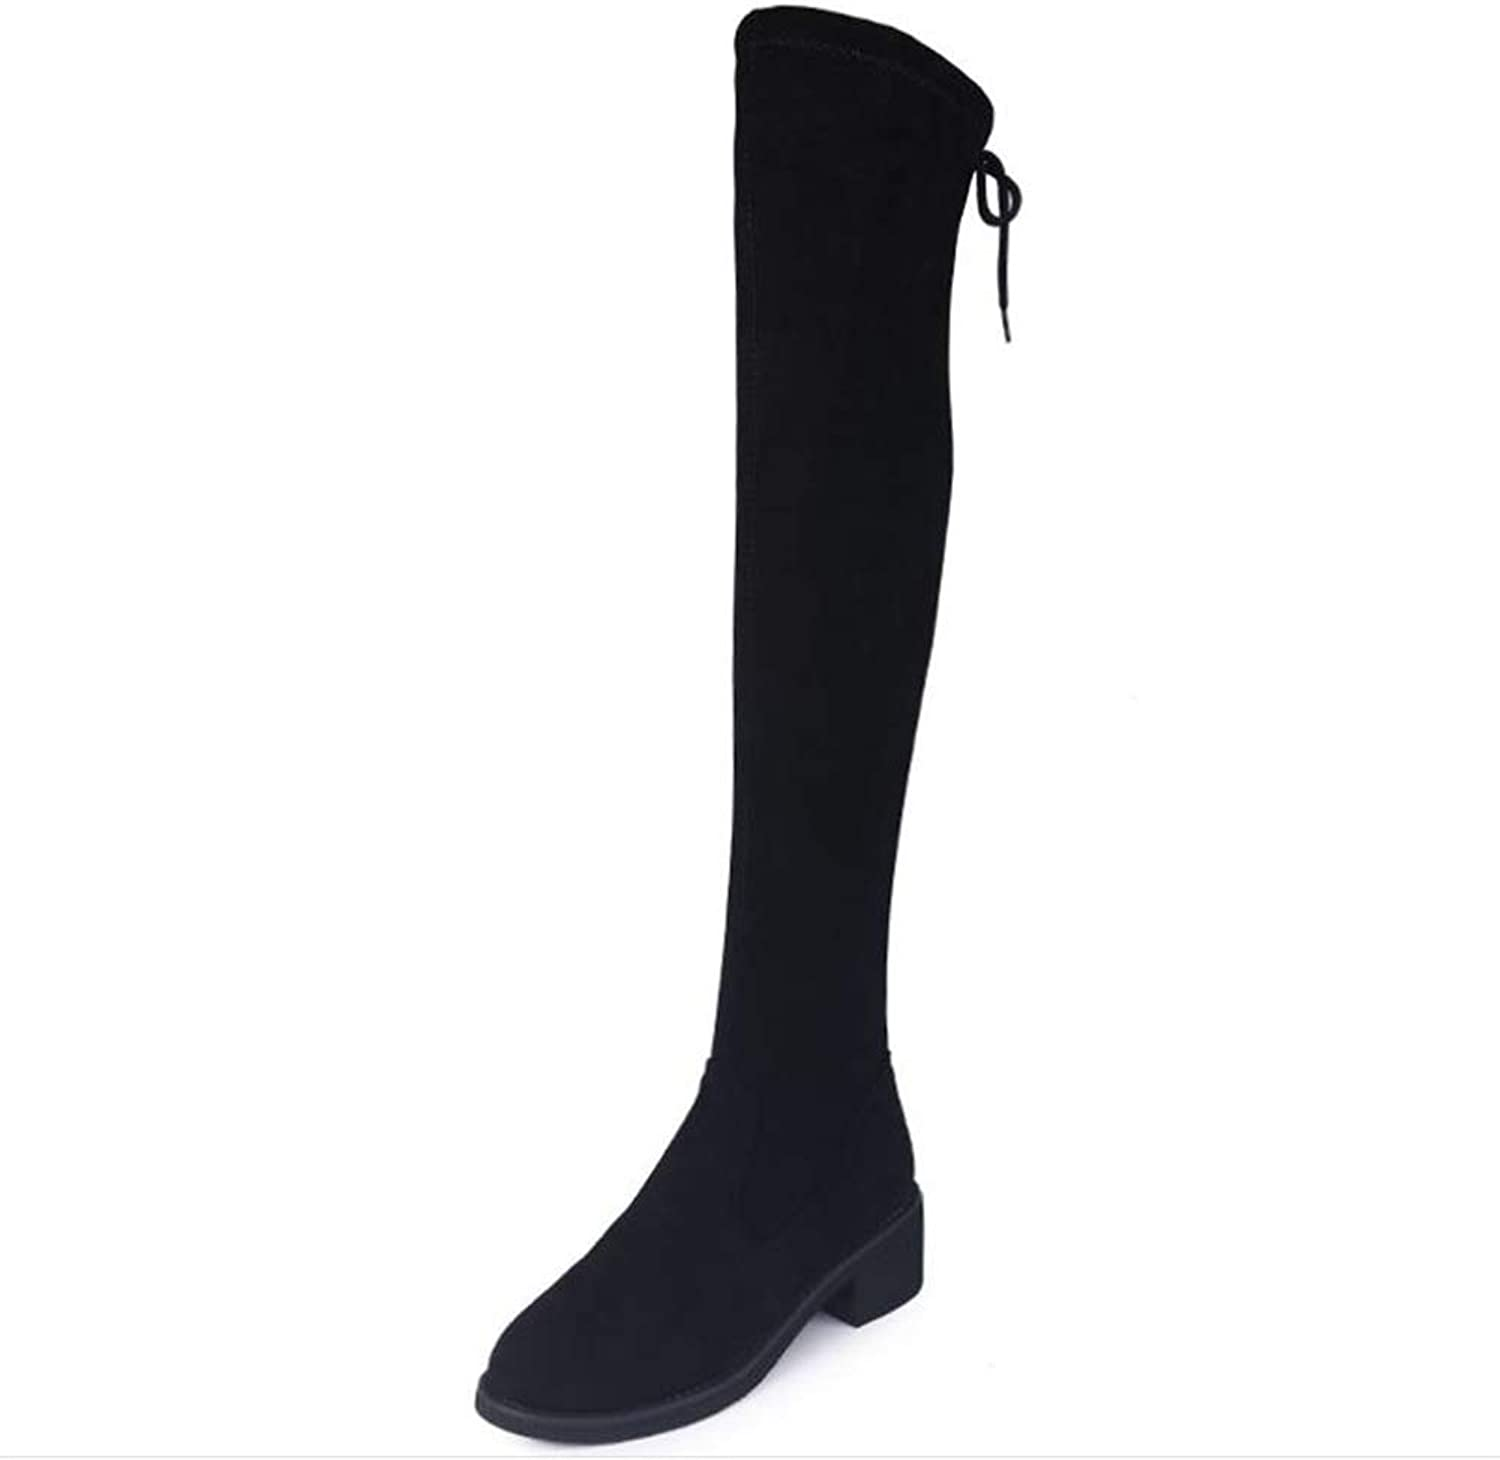 Gusha Winter Boots, Women's Stretch Over The Knee Boots, Thick Boots, Casual Party